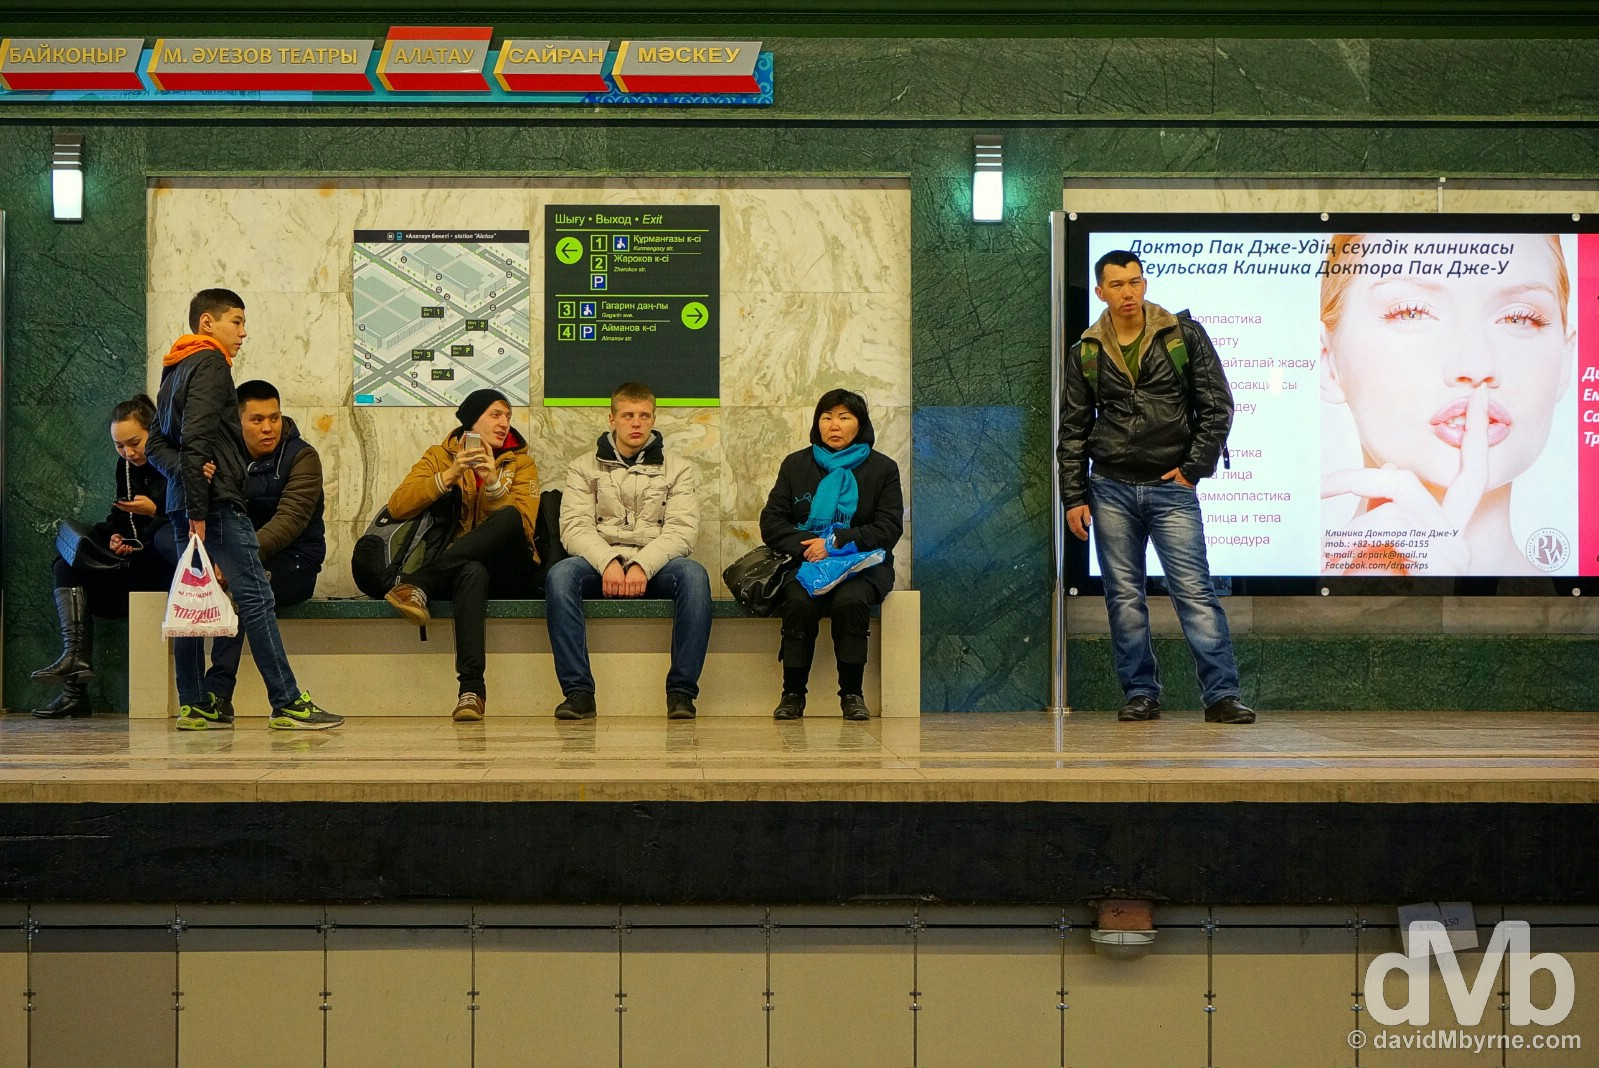 Waiting on the platform of Alatau Metro Station in Almaty, Kazakhstan. February 21, 2015.